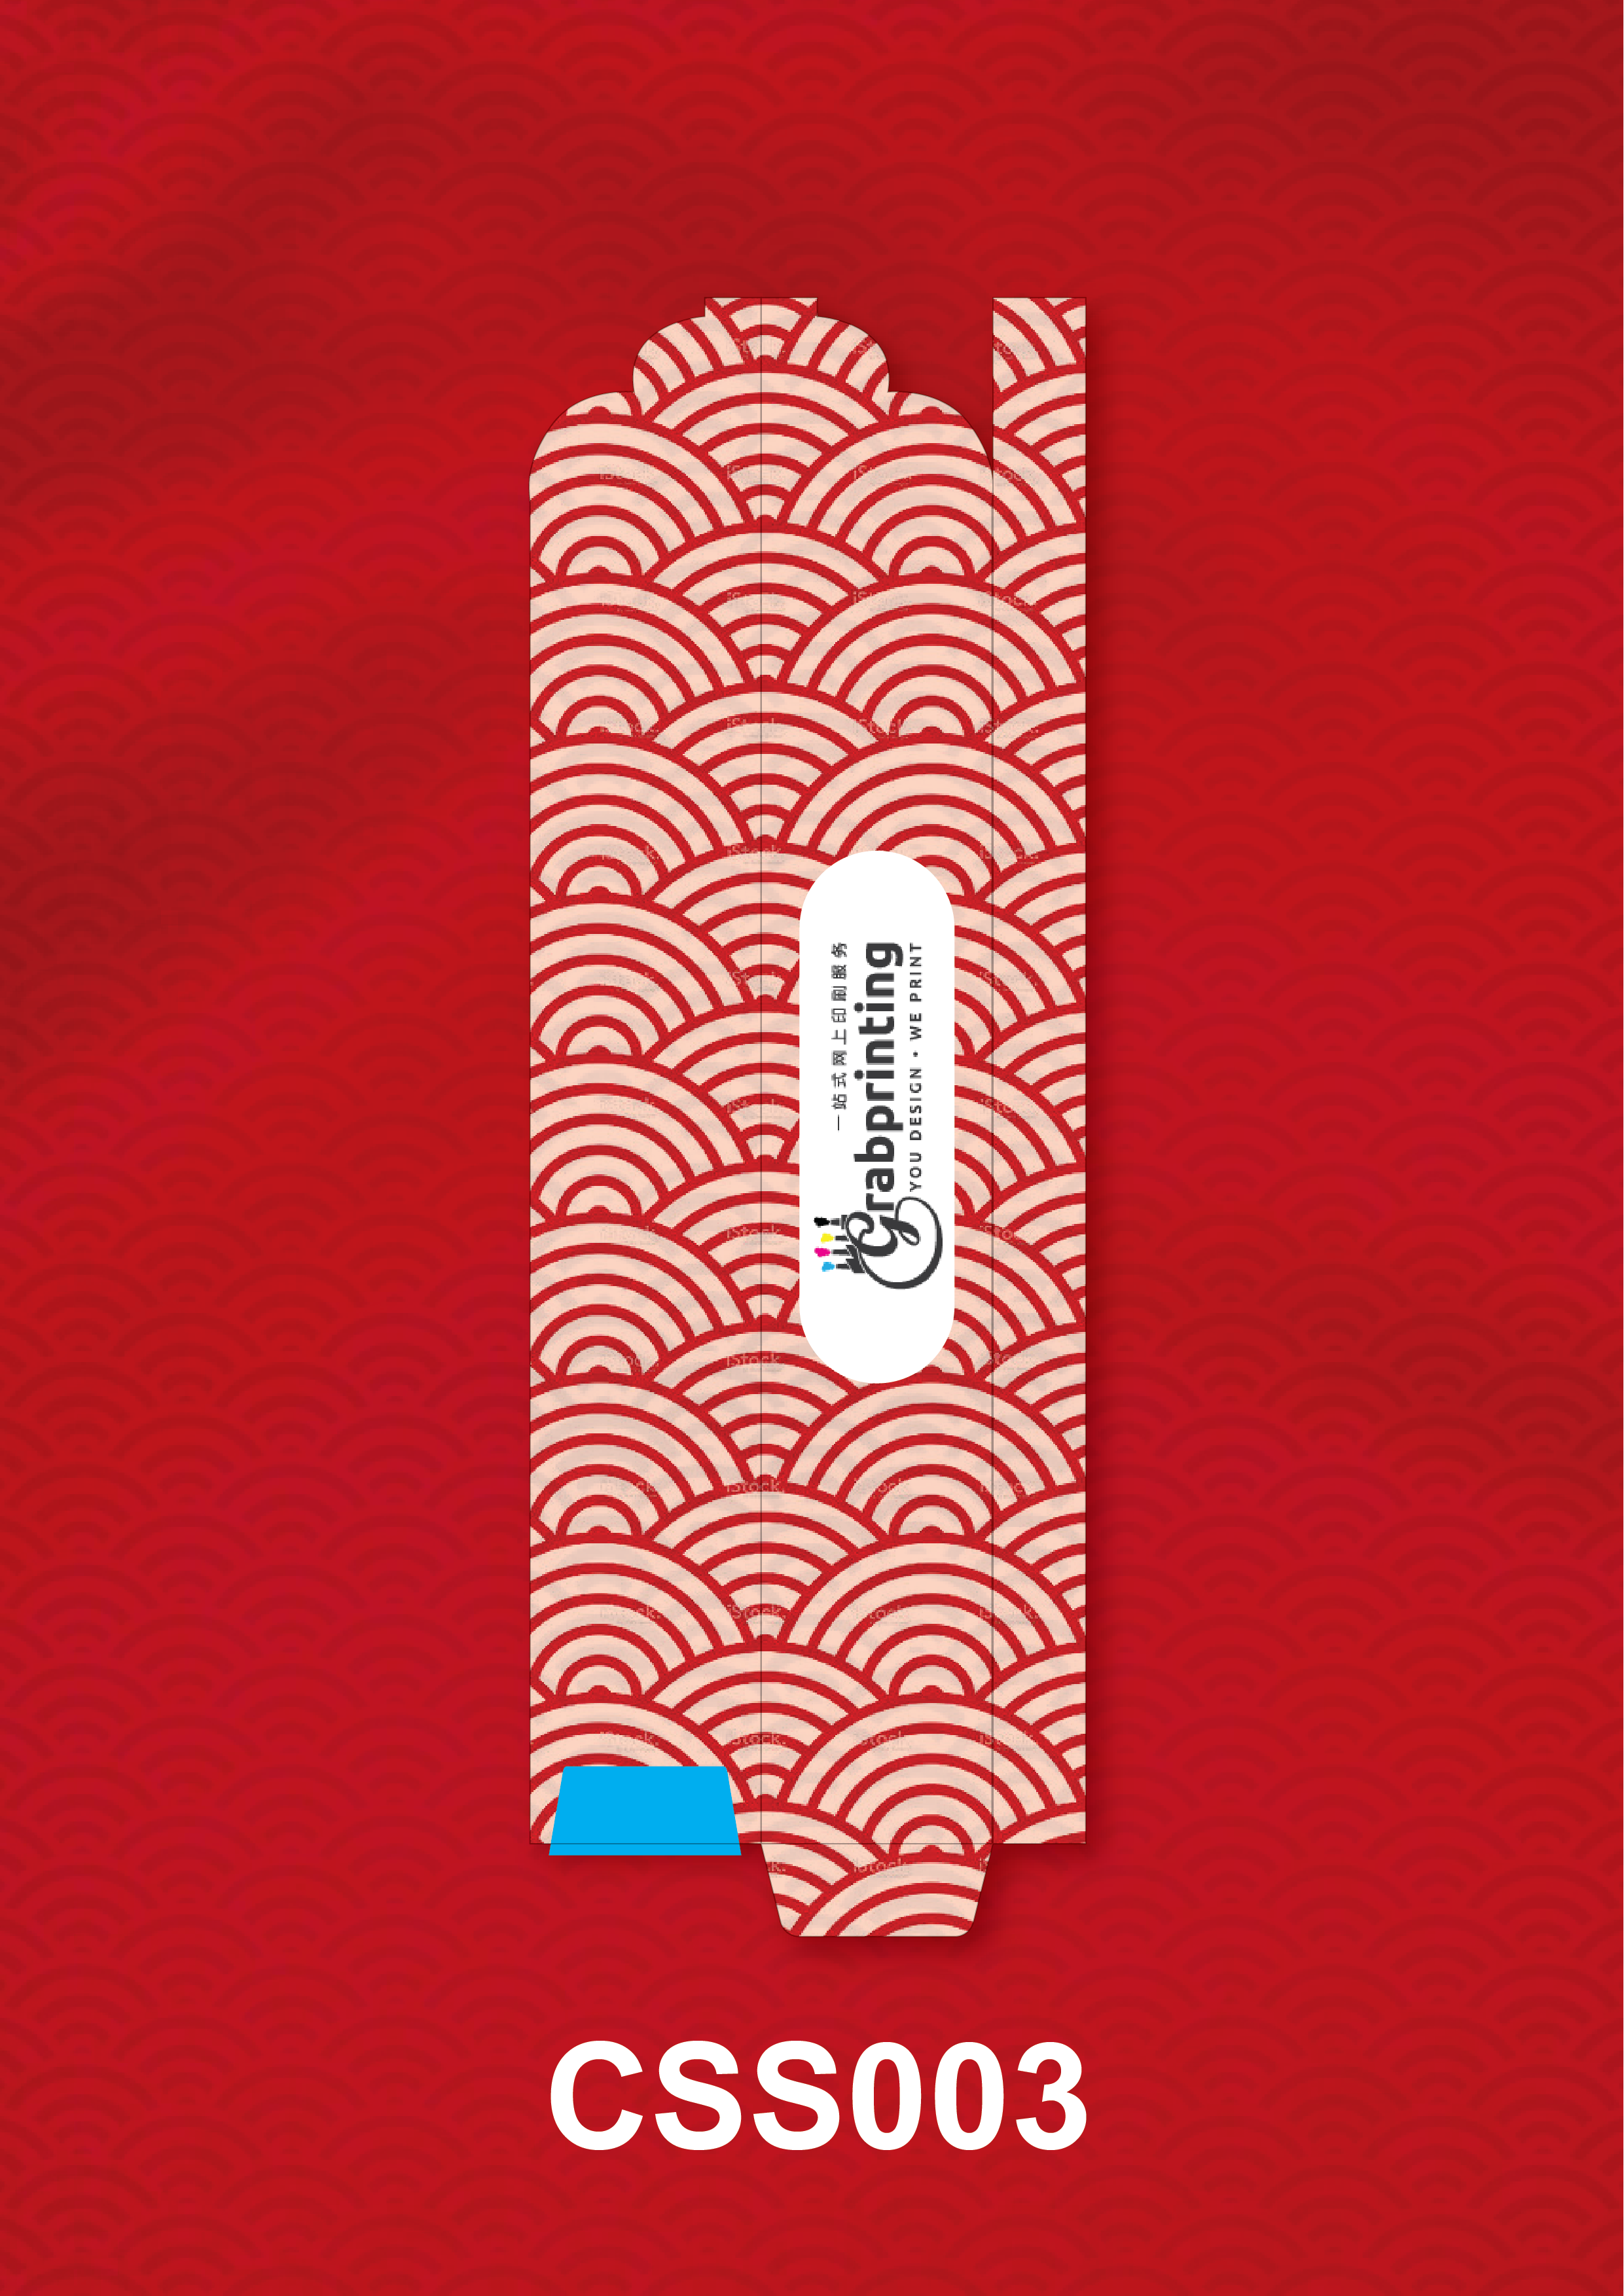 Chopsticks Sleeves css003